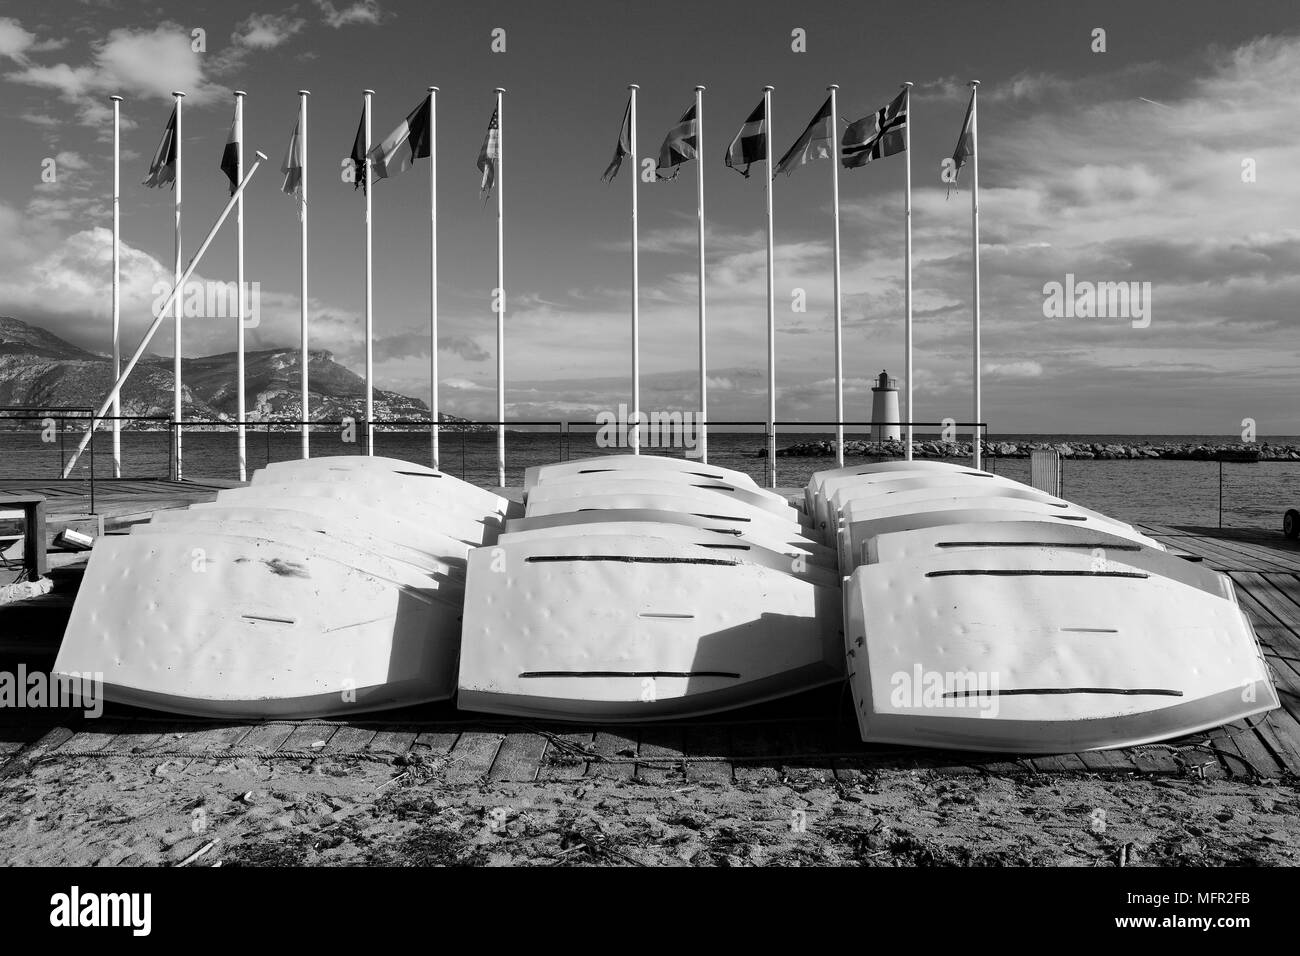 Equipment of a sailing school on Corsica Island, France. - Stock Image